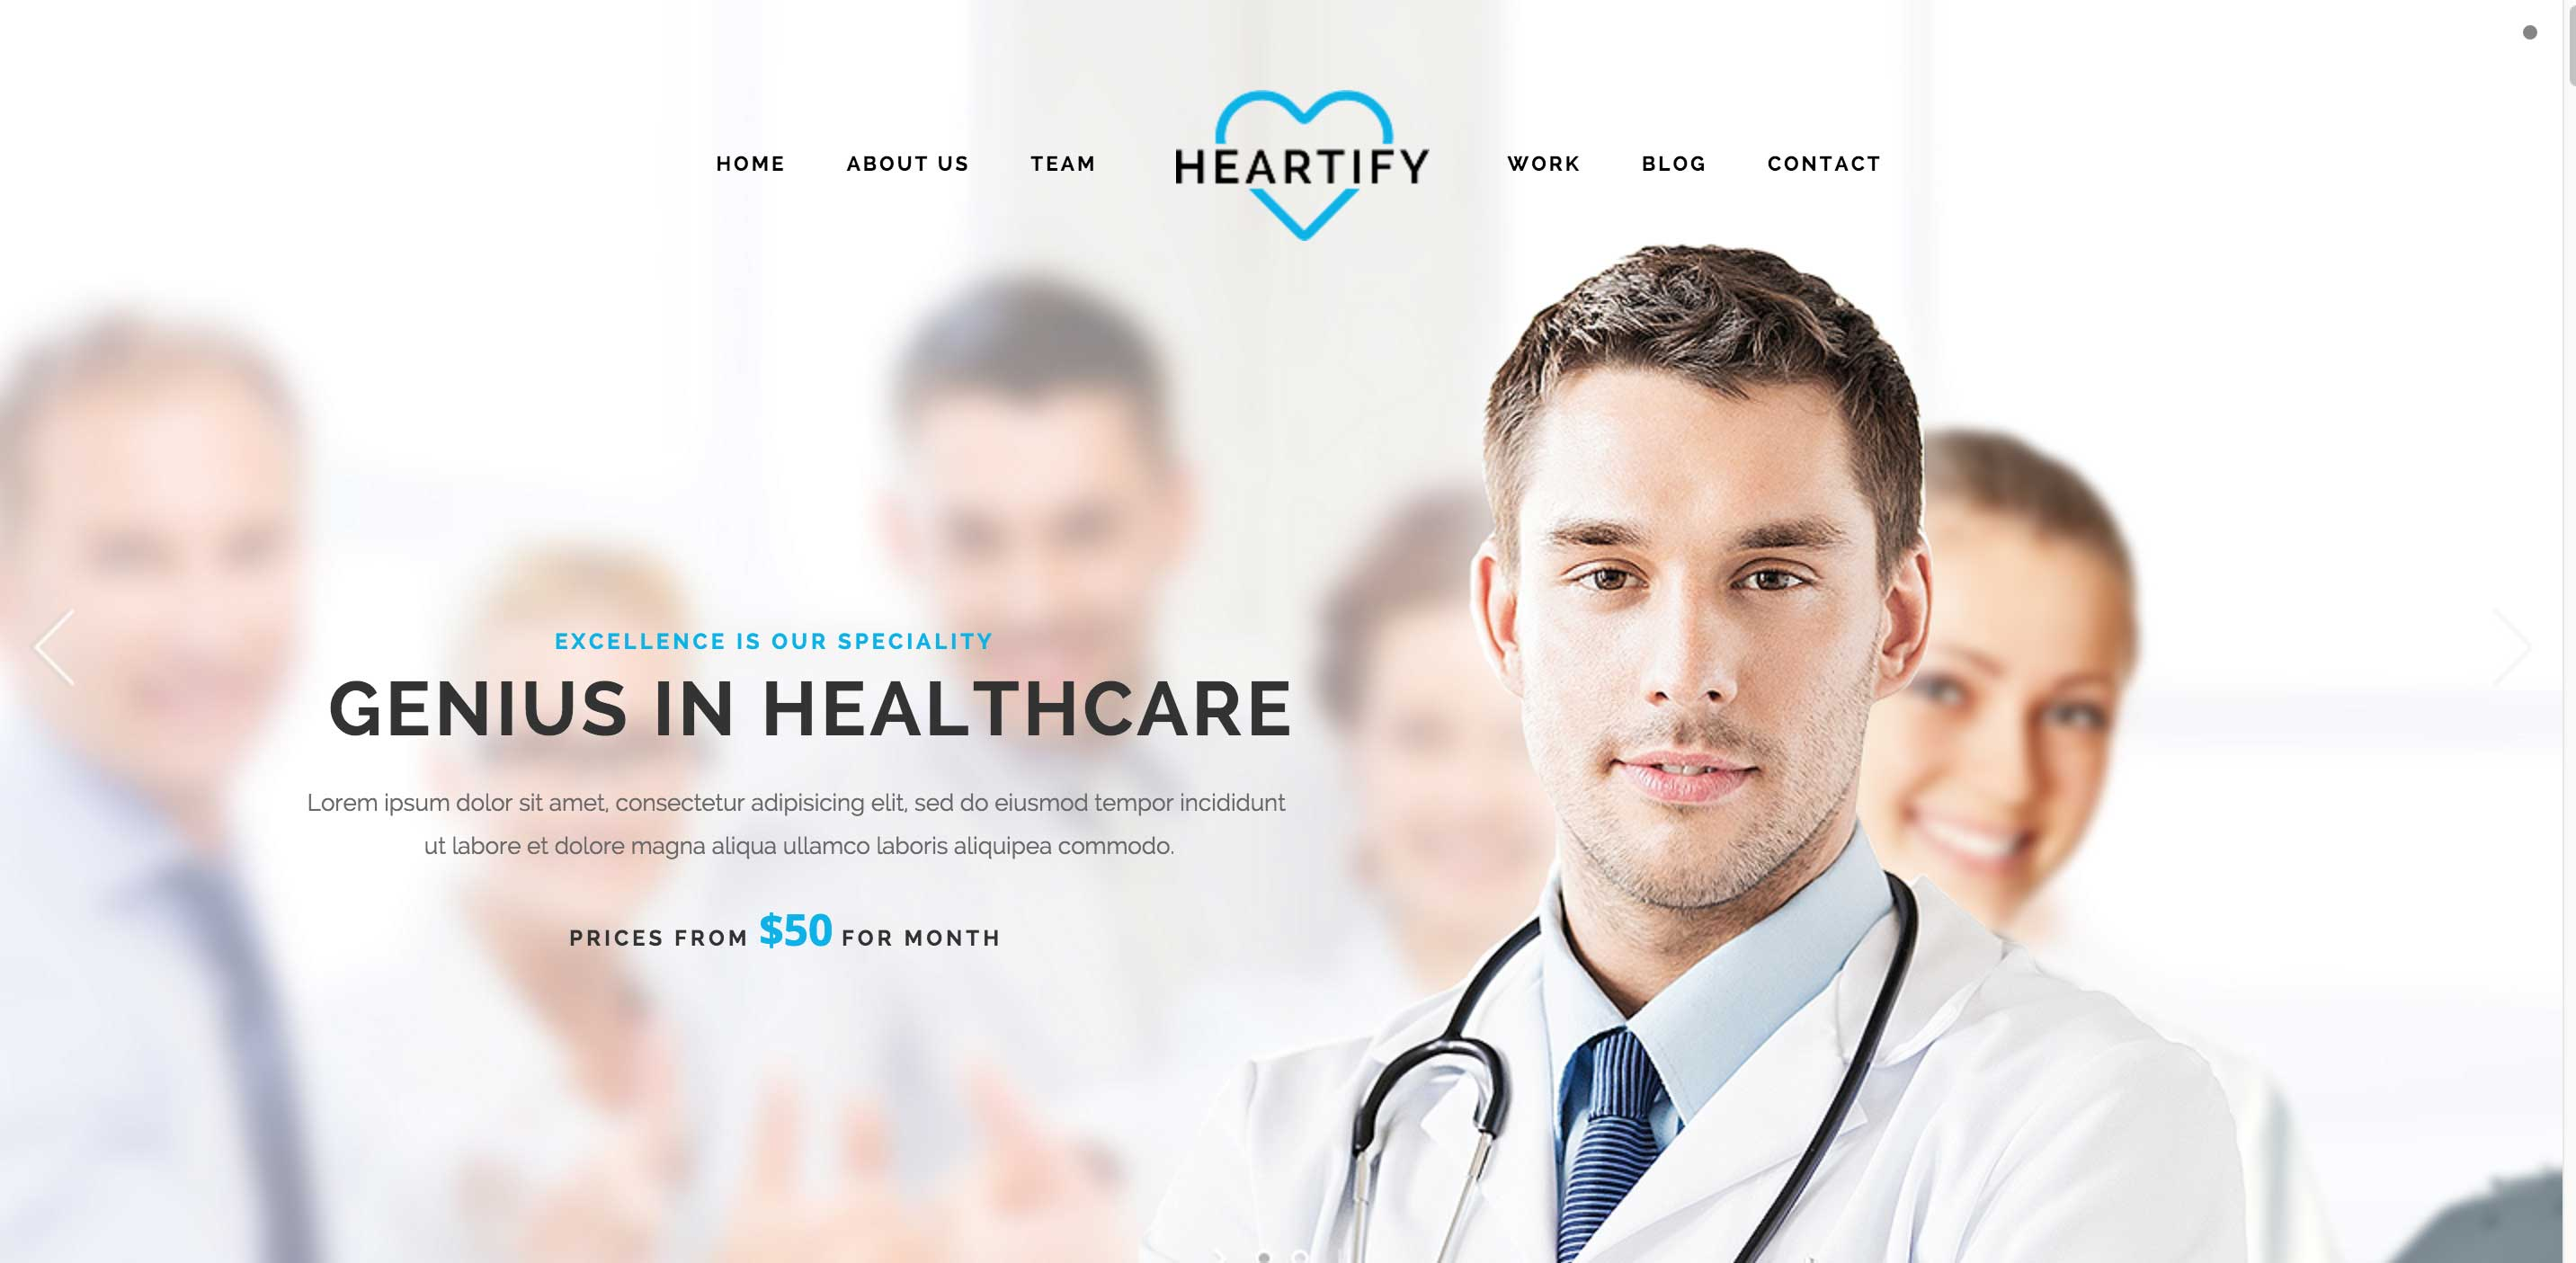 heartily medical WordPress themes